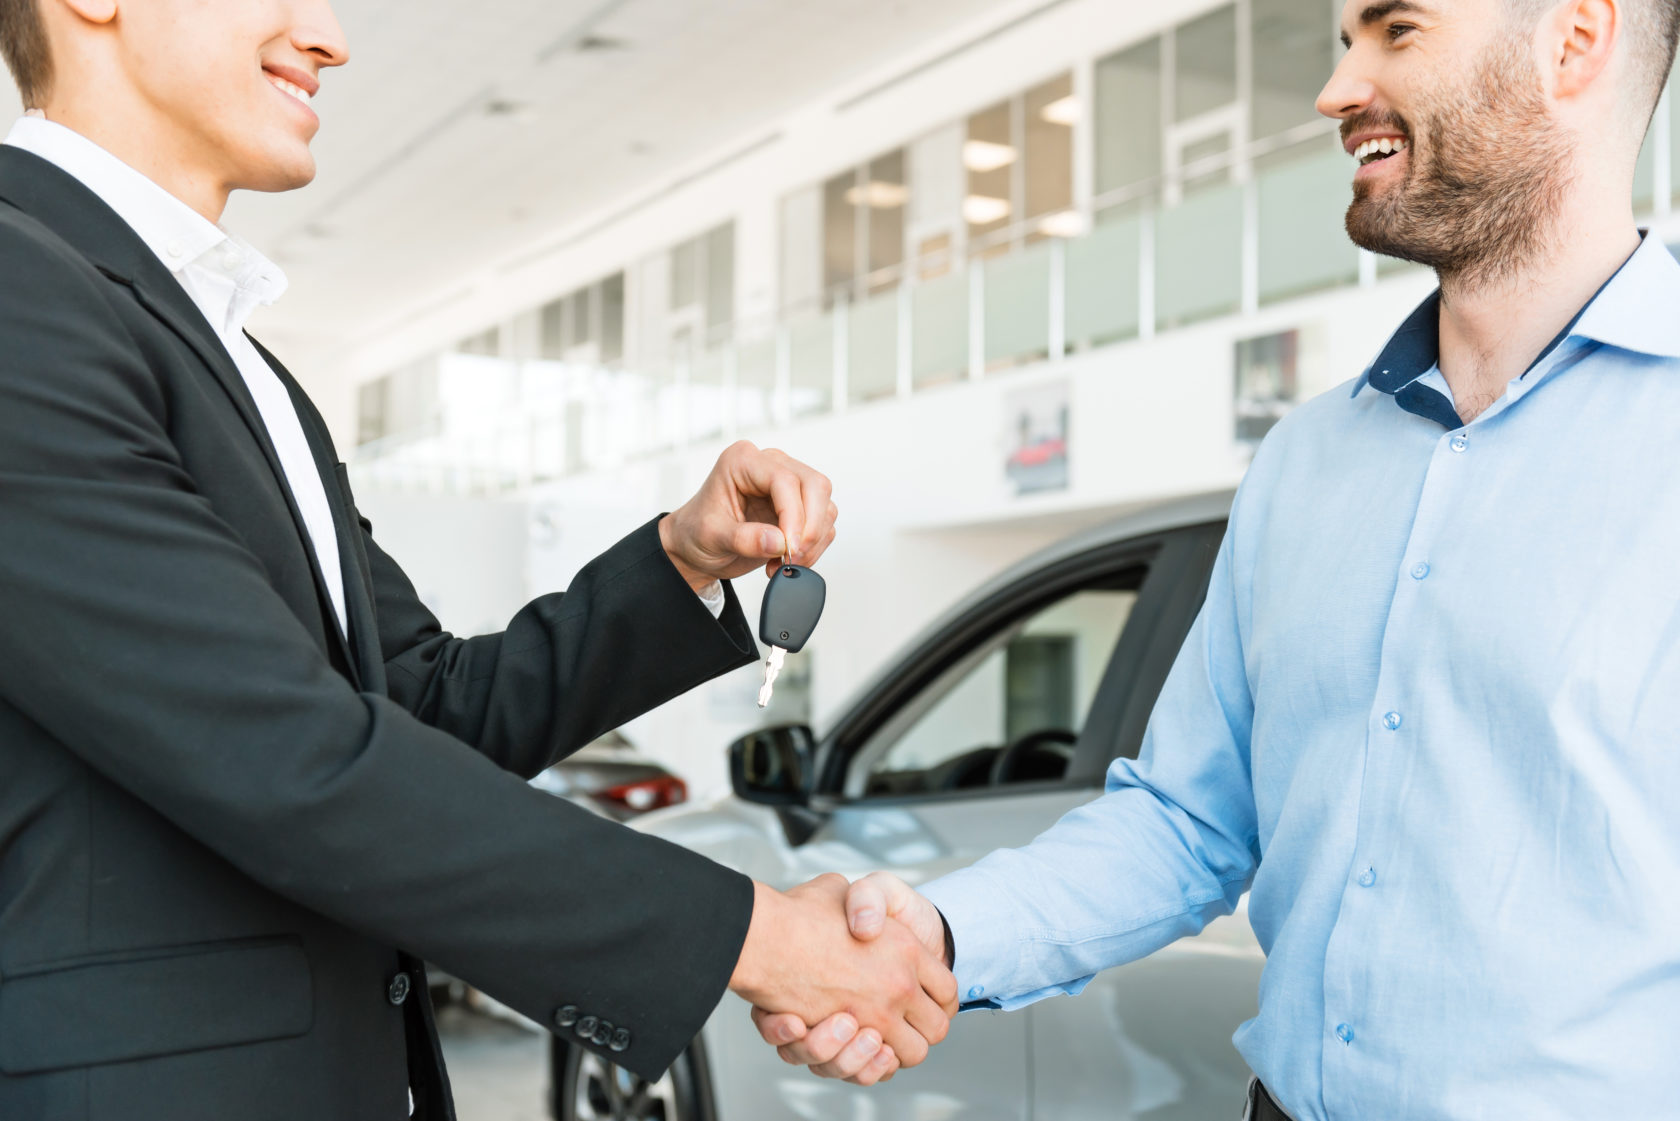 Company Car: Buy, Lease, Borrow